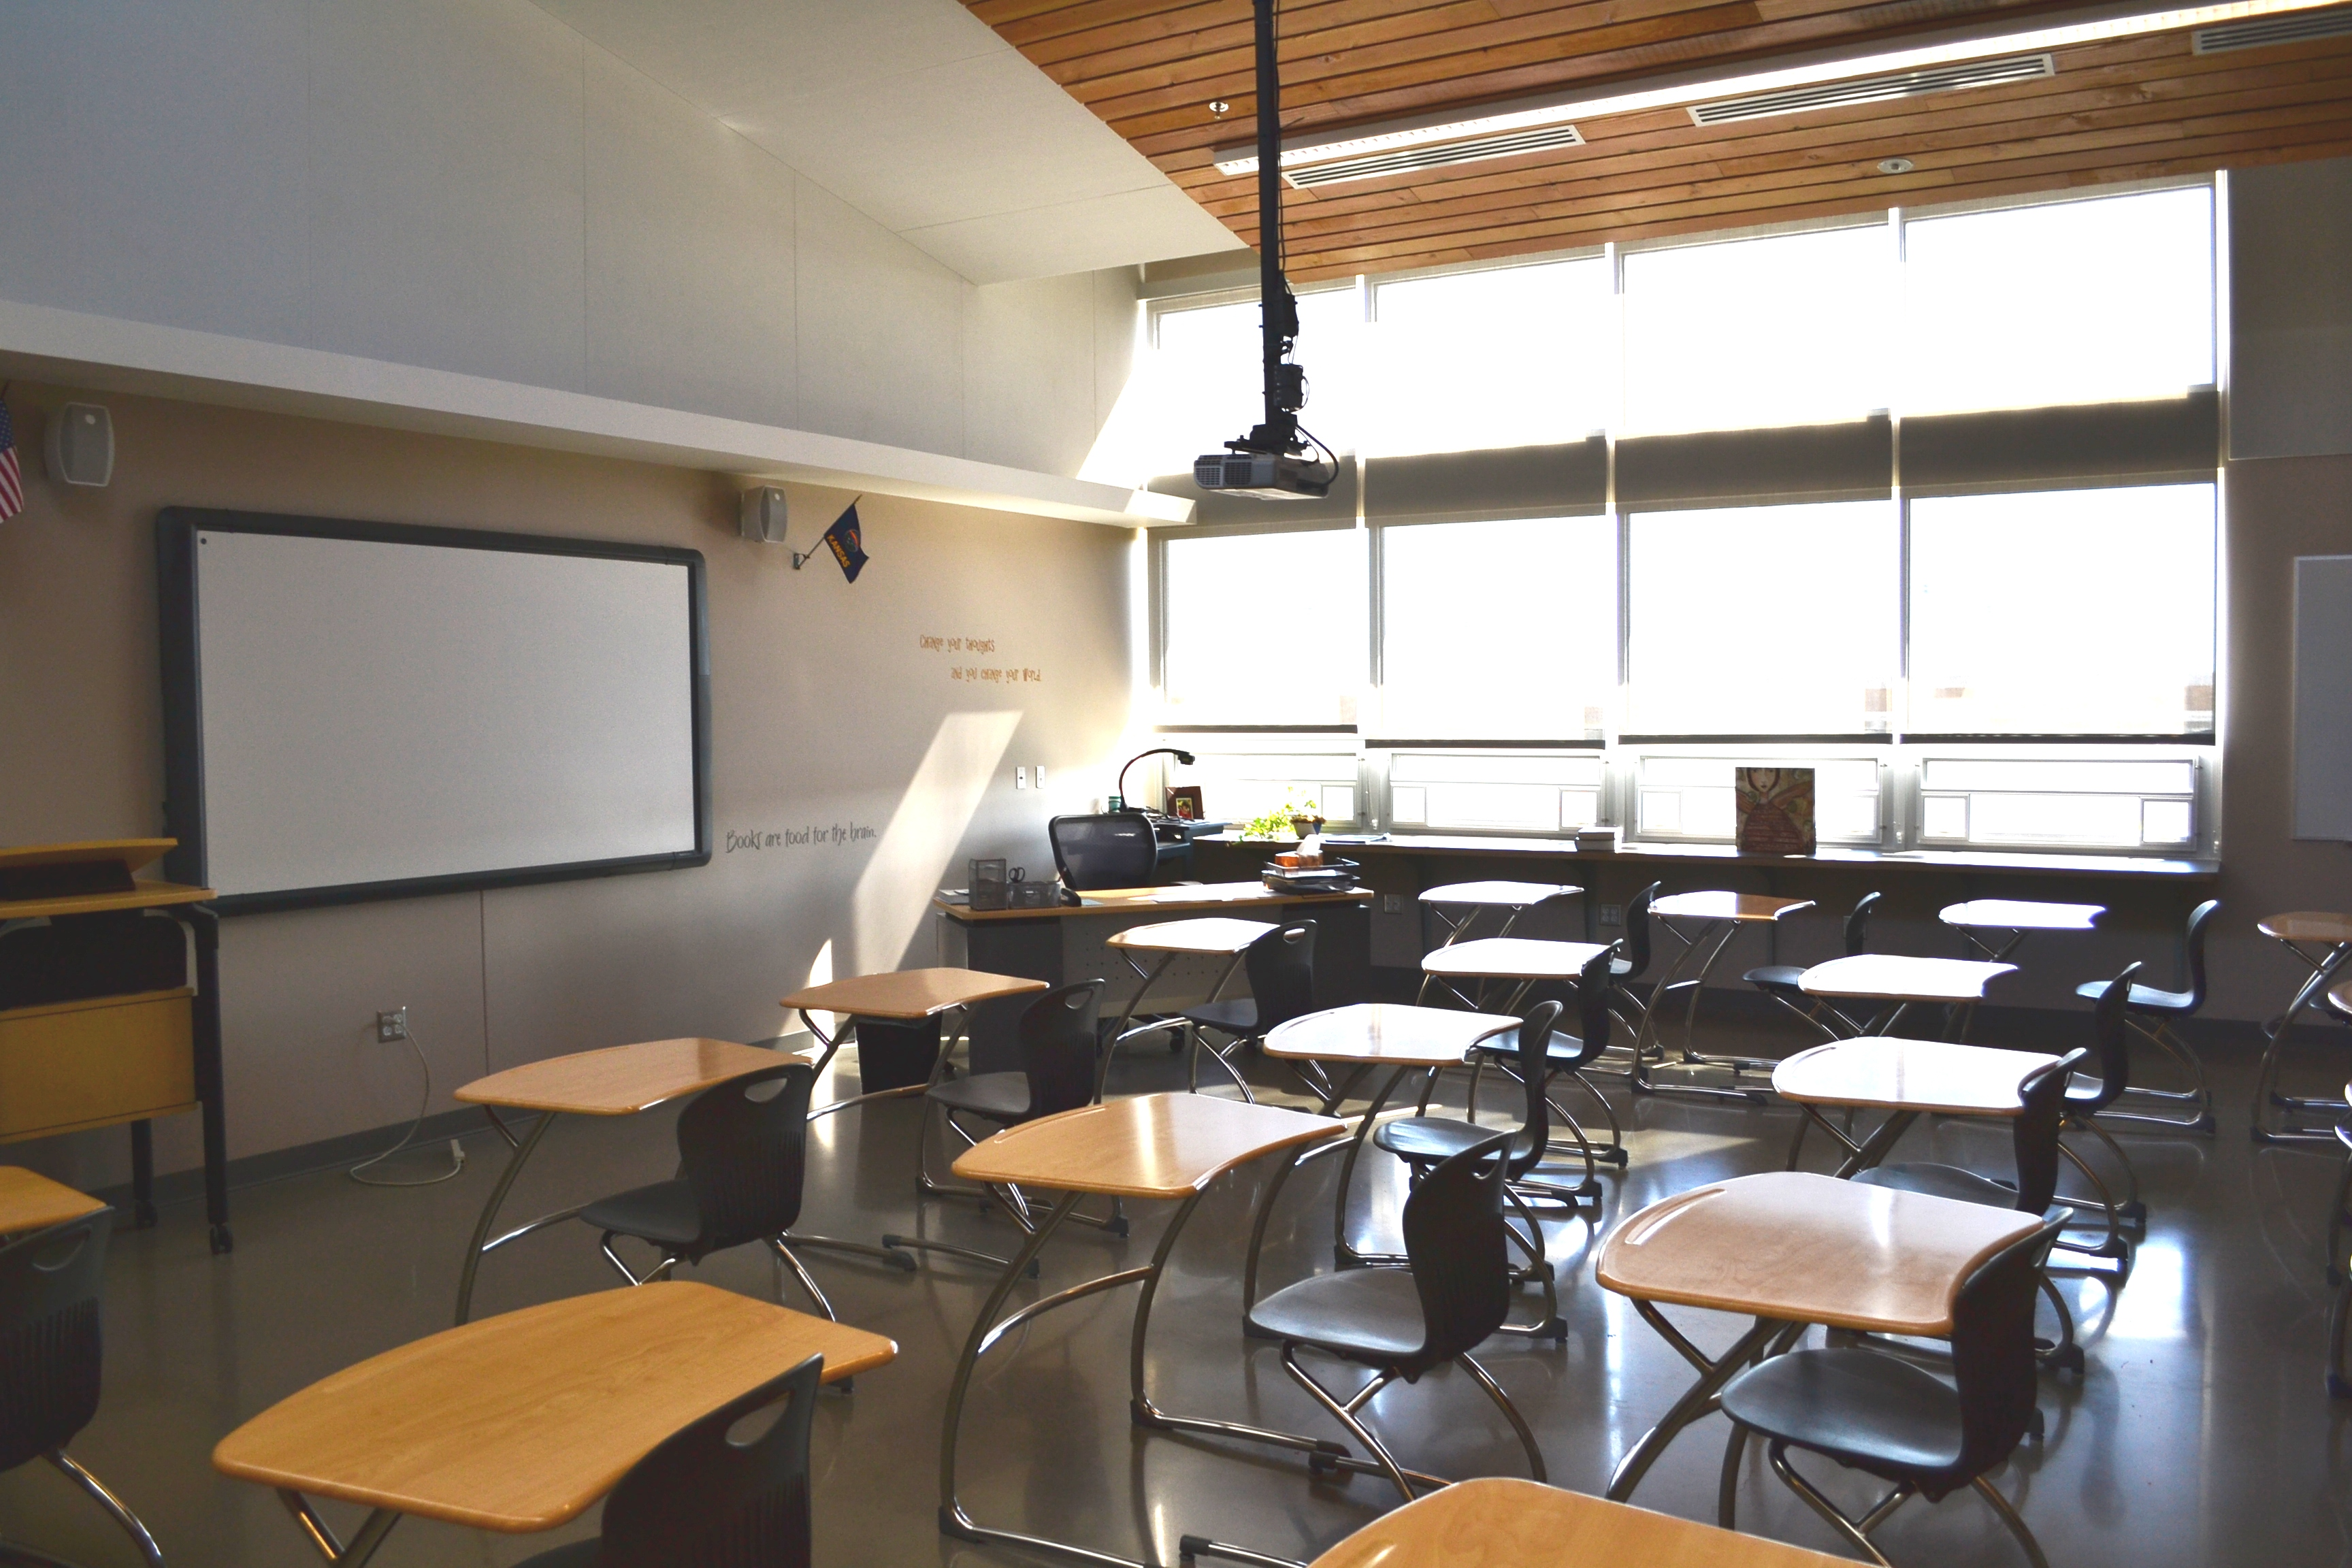 Modern Classroom Design ~ Designing green schools that advance public health